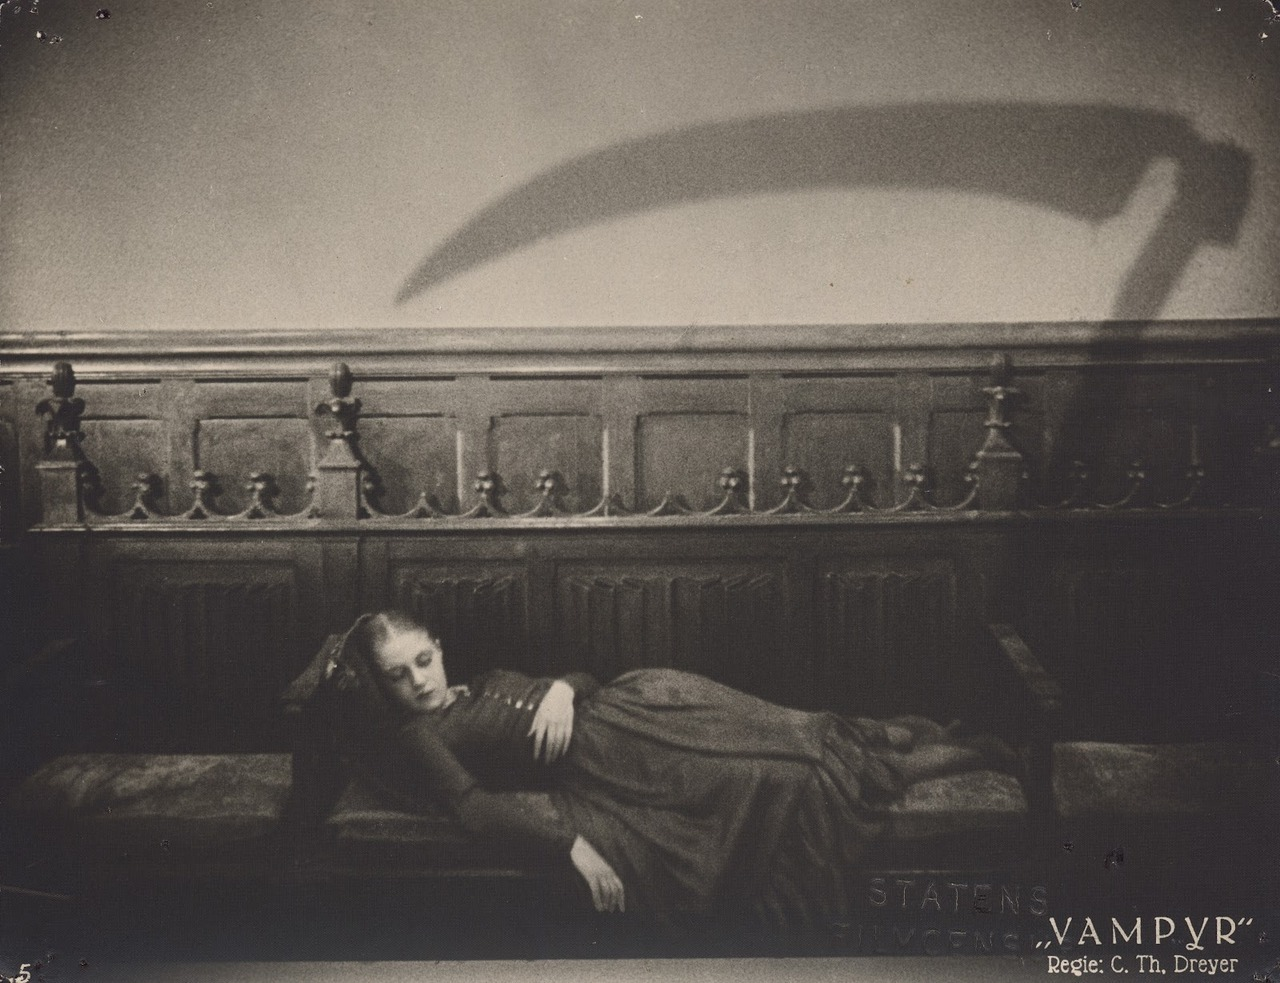 Carl Th. Dreyer. Vampyr (1932) (via The Criterion Collection)